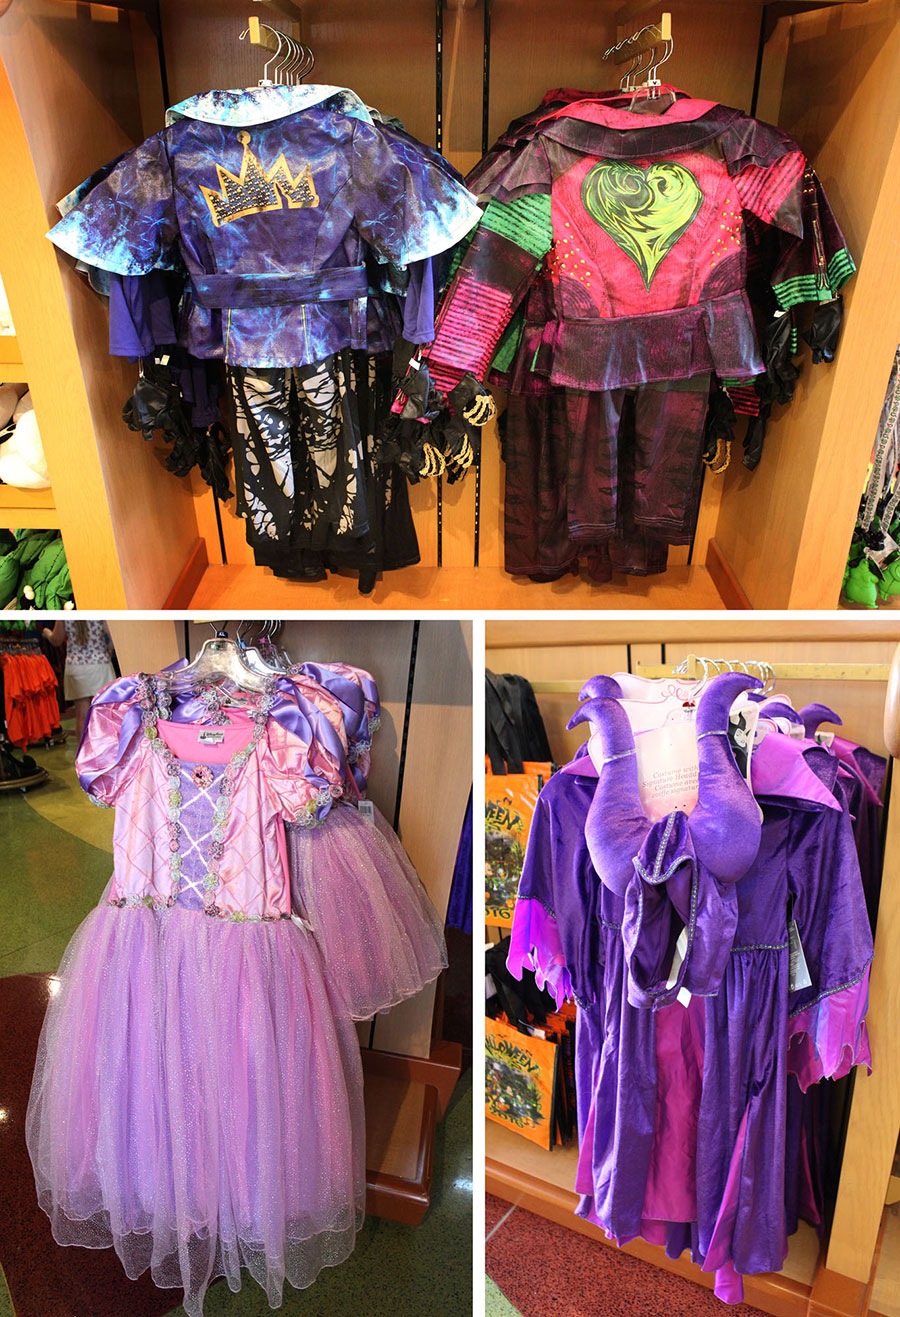 #WonderFALL Halloween Costume Ideas from Disney Parks